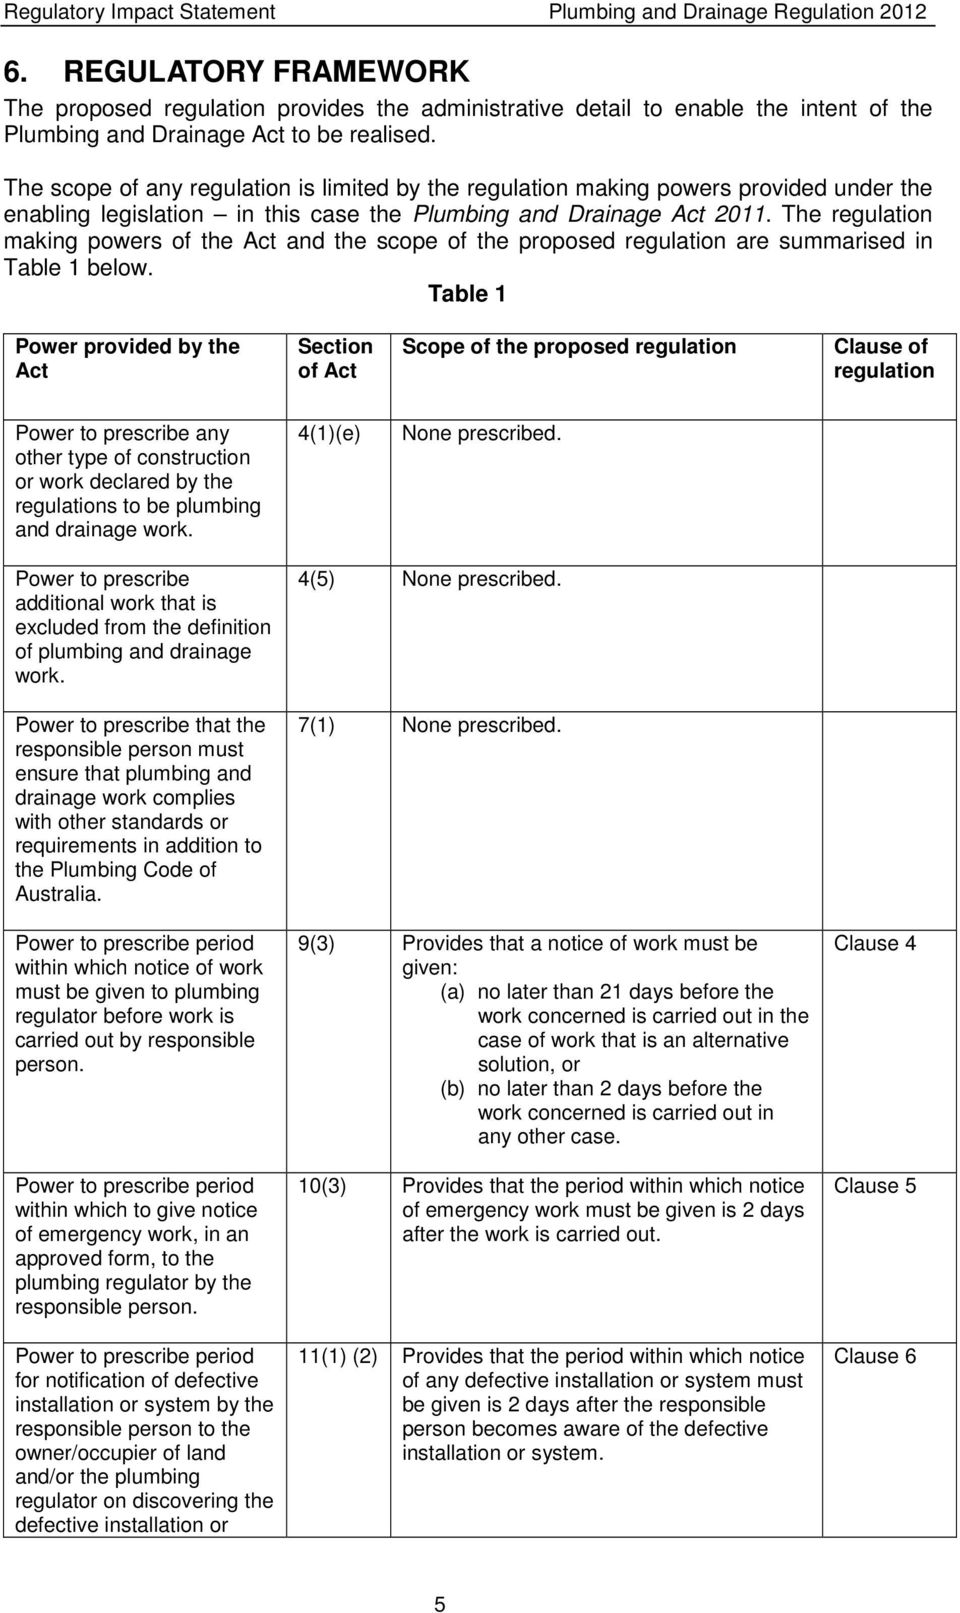 The regulation making powers of the Act and the scope of the proposed regulation are summarised in Table 1 below.